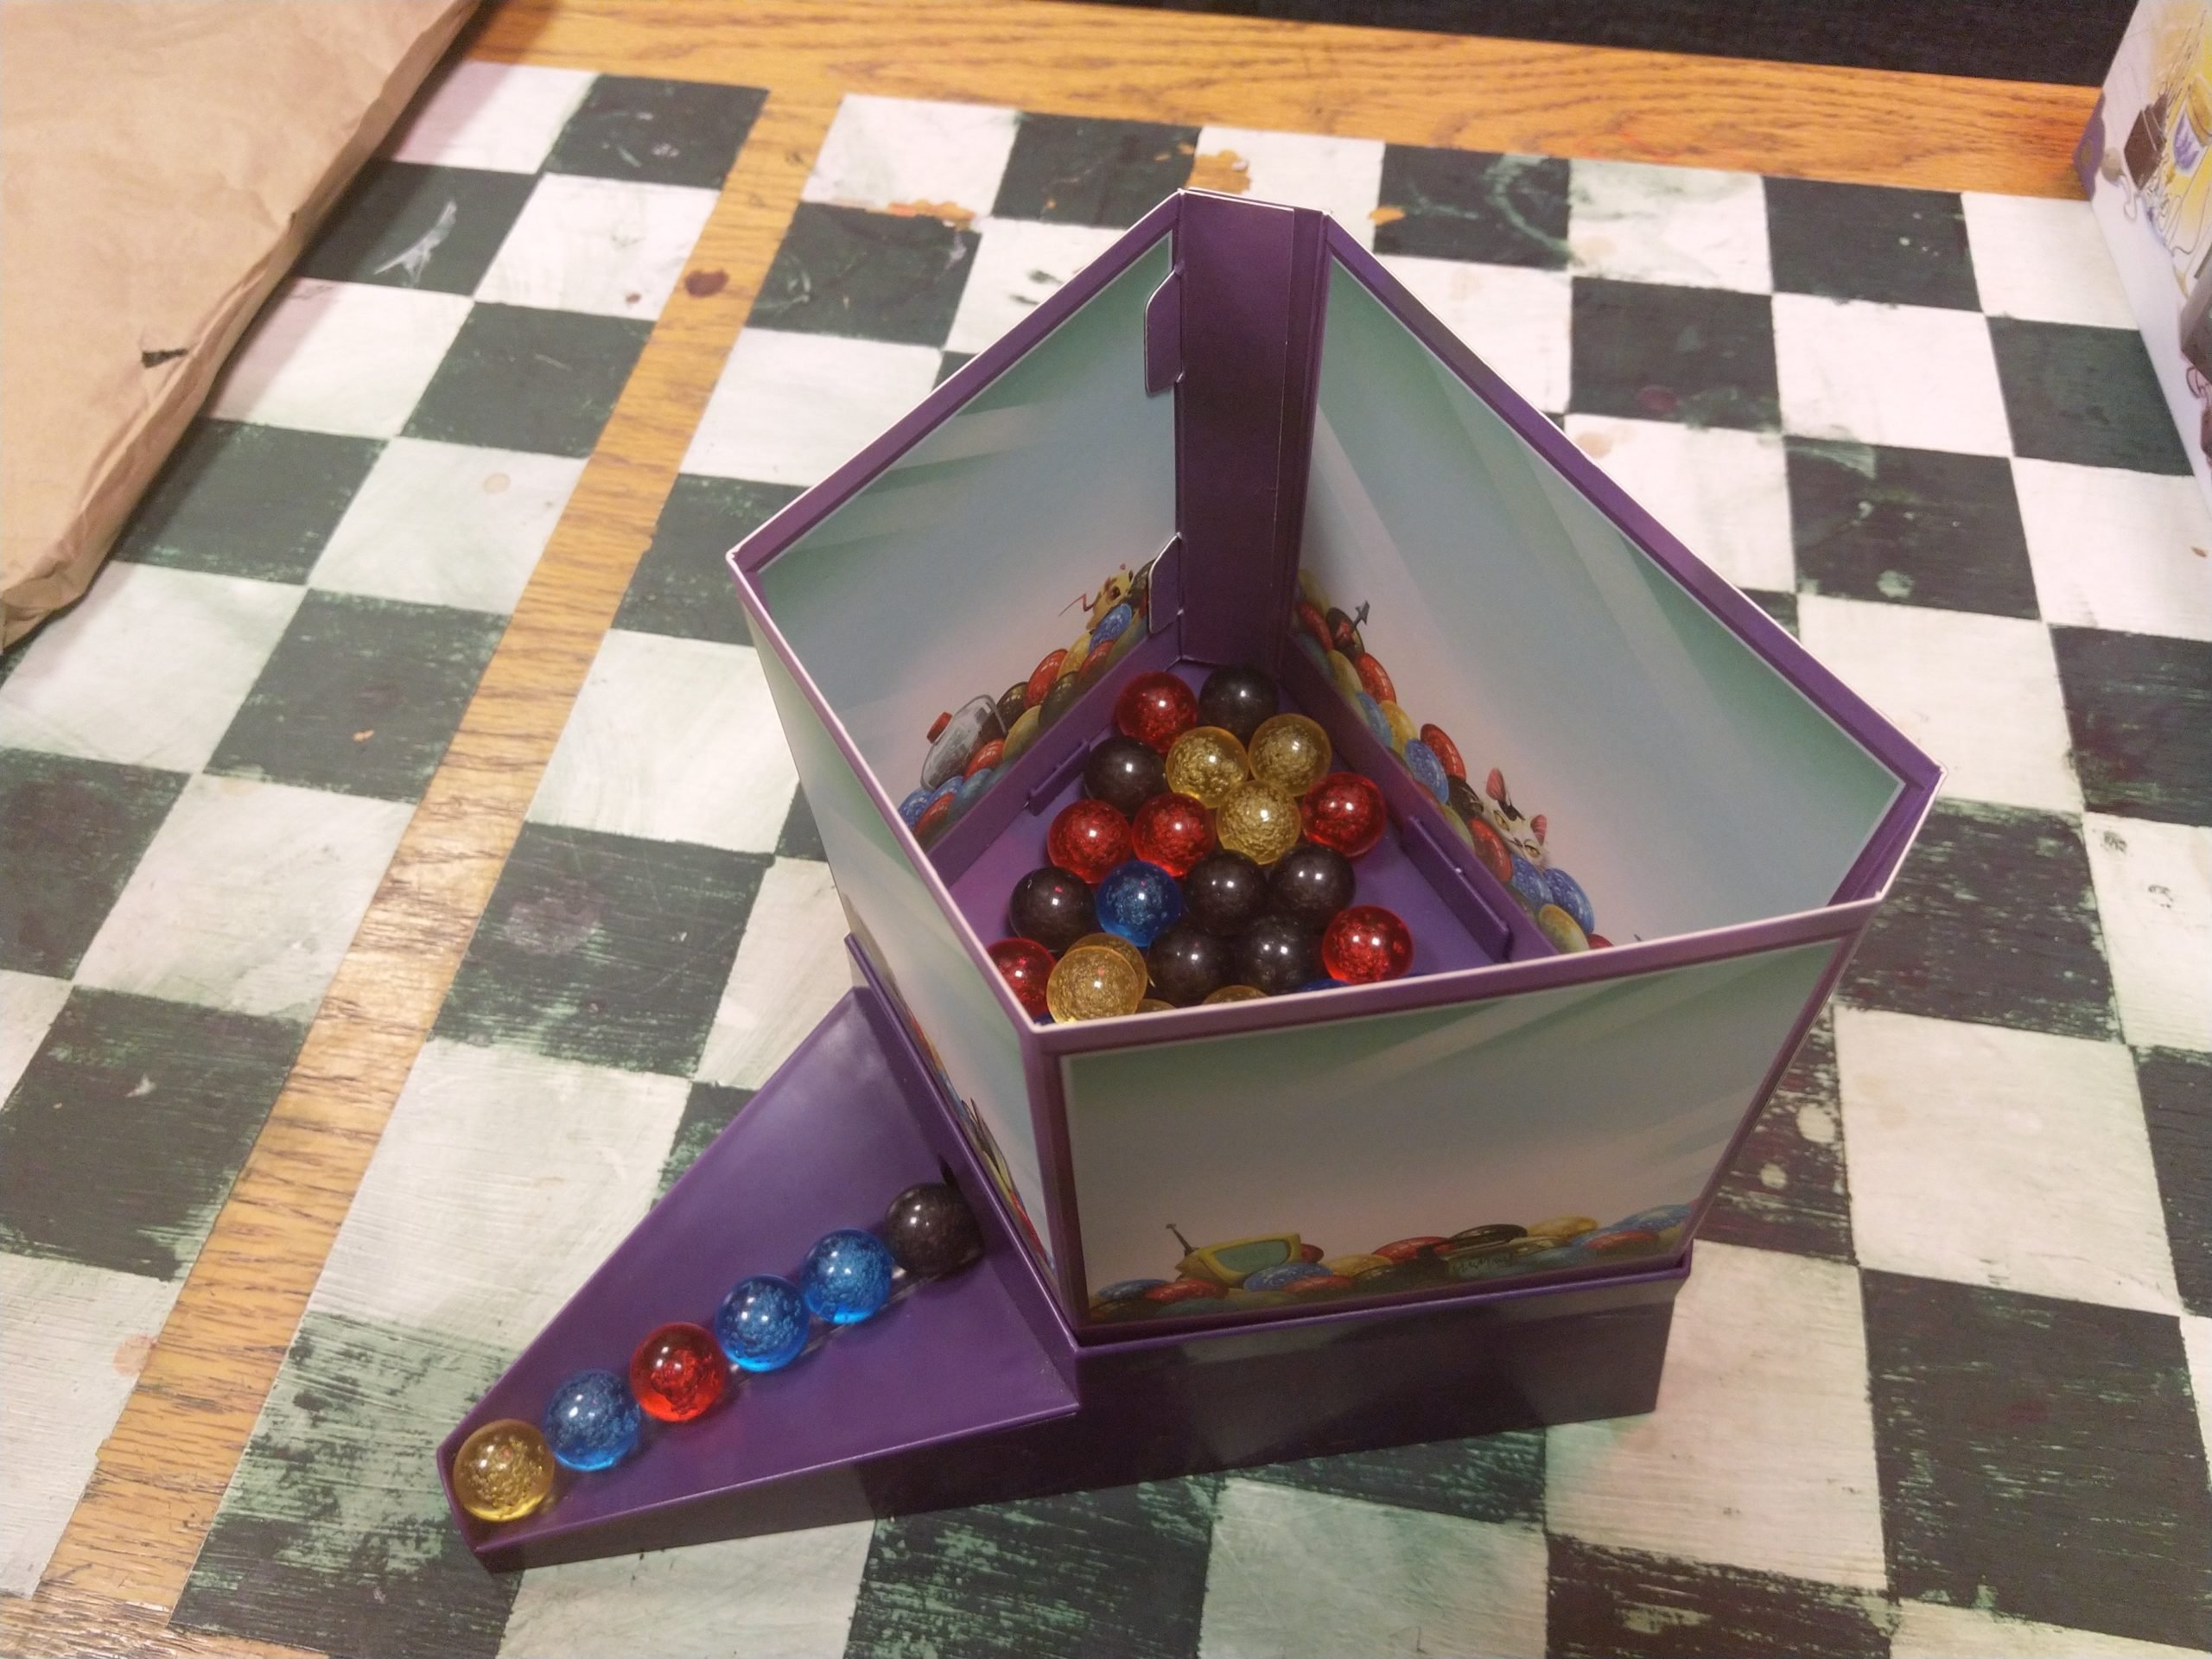 a plastic marble dispenser with marbles of various colors